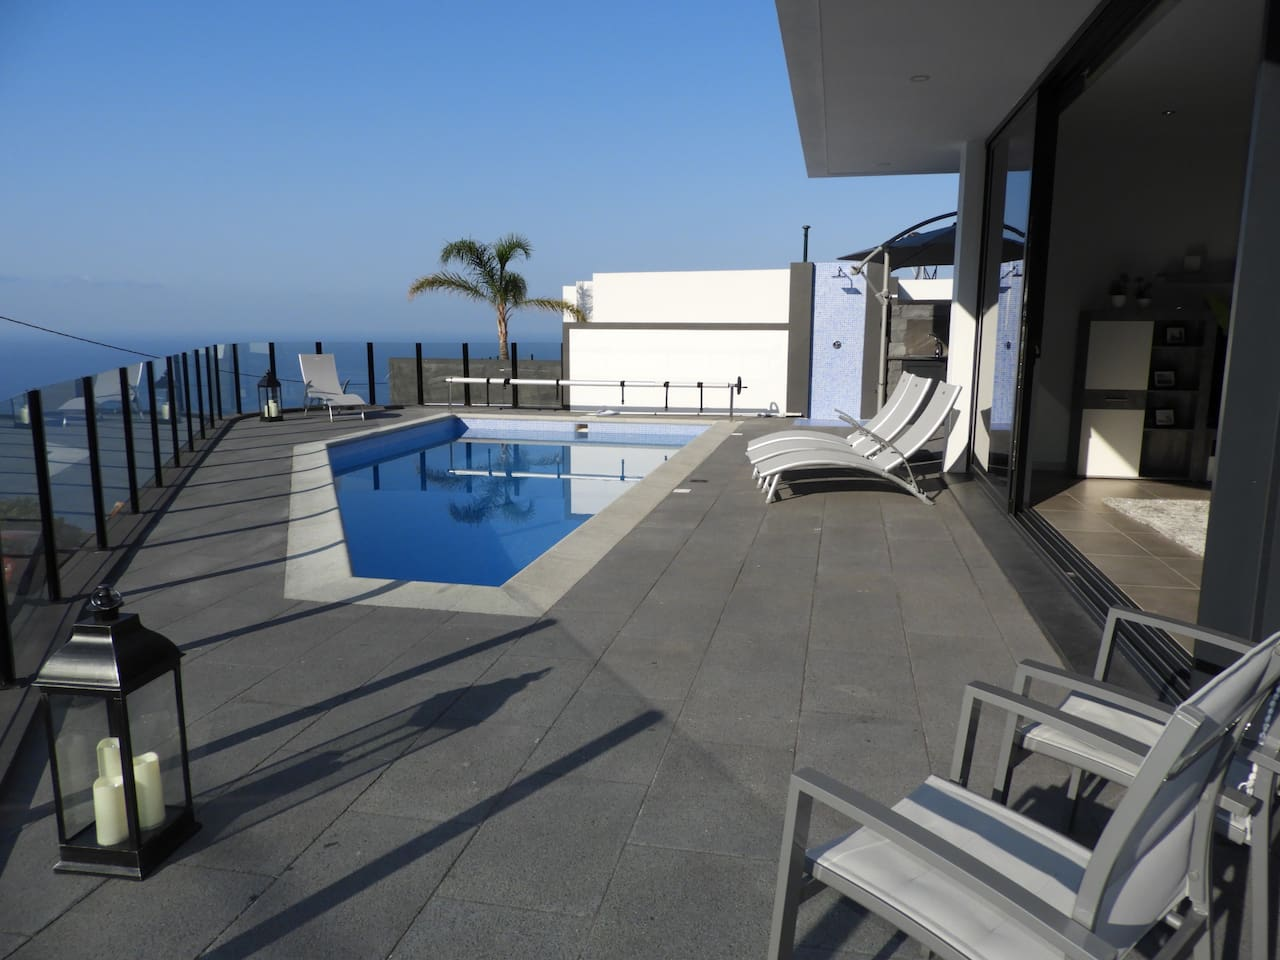 Salt water swimming pool with sun terrace and barbecue